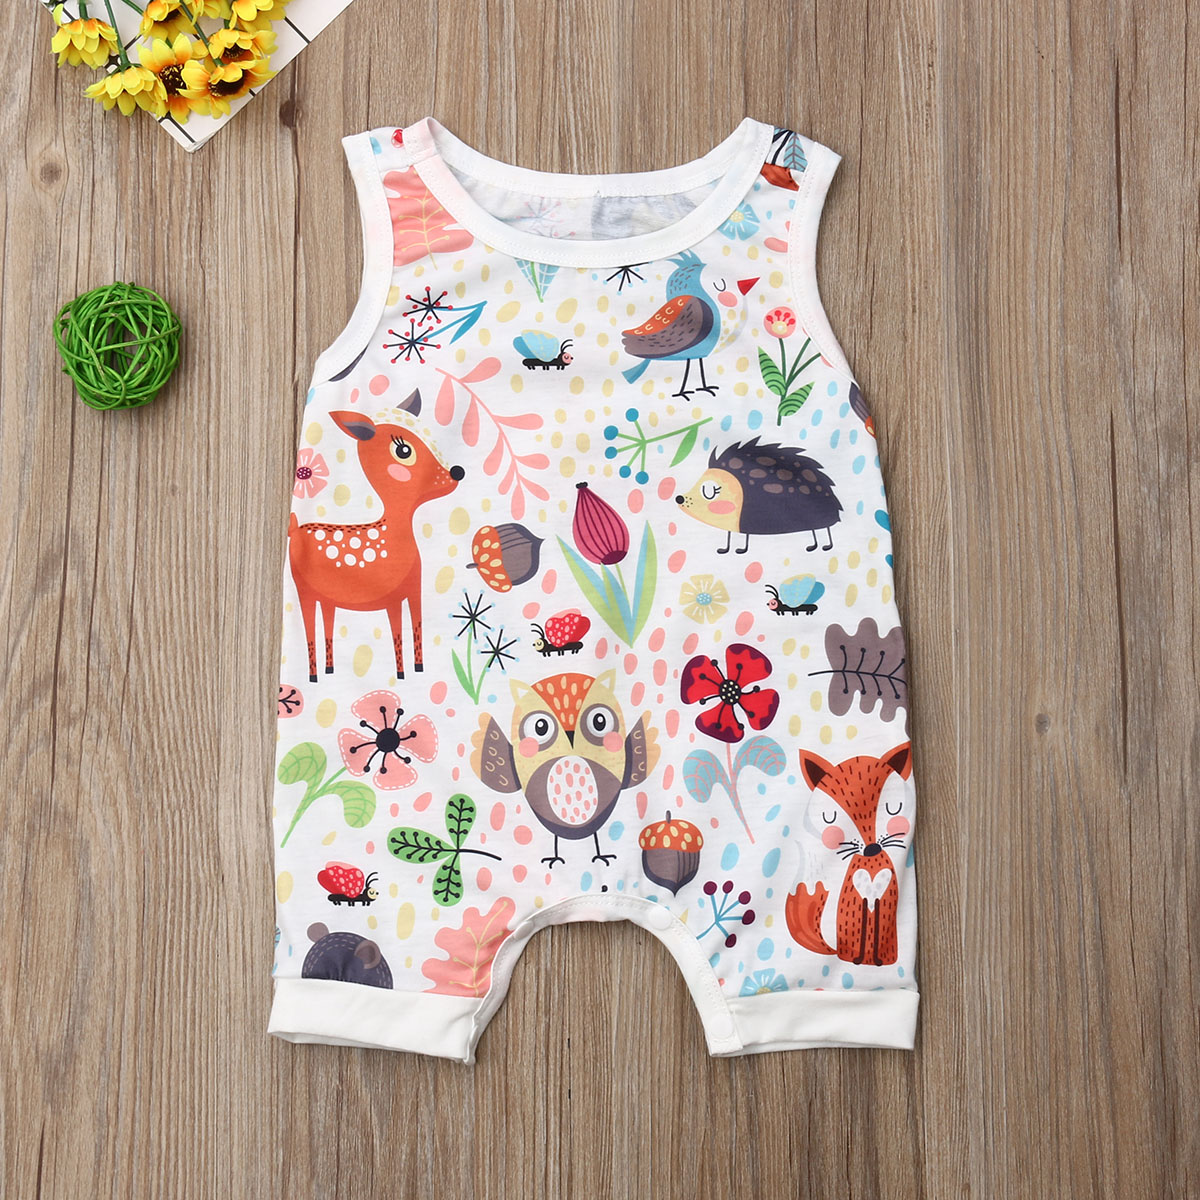 Pudcoco Summer Newborn Baby Girl Clothes Sleeveless Animal Print Romper Jumpsuit One-Piece Outfit Sunsuit